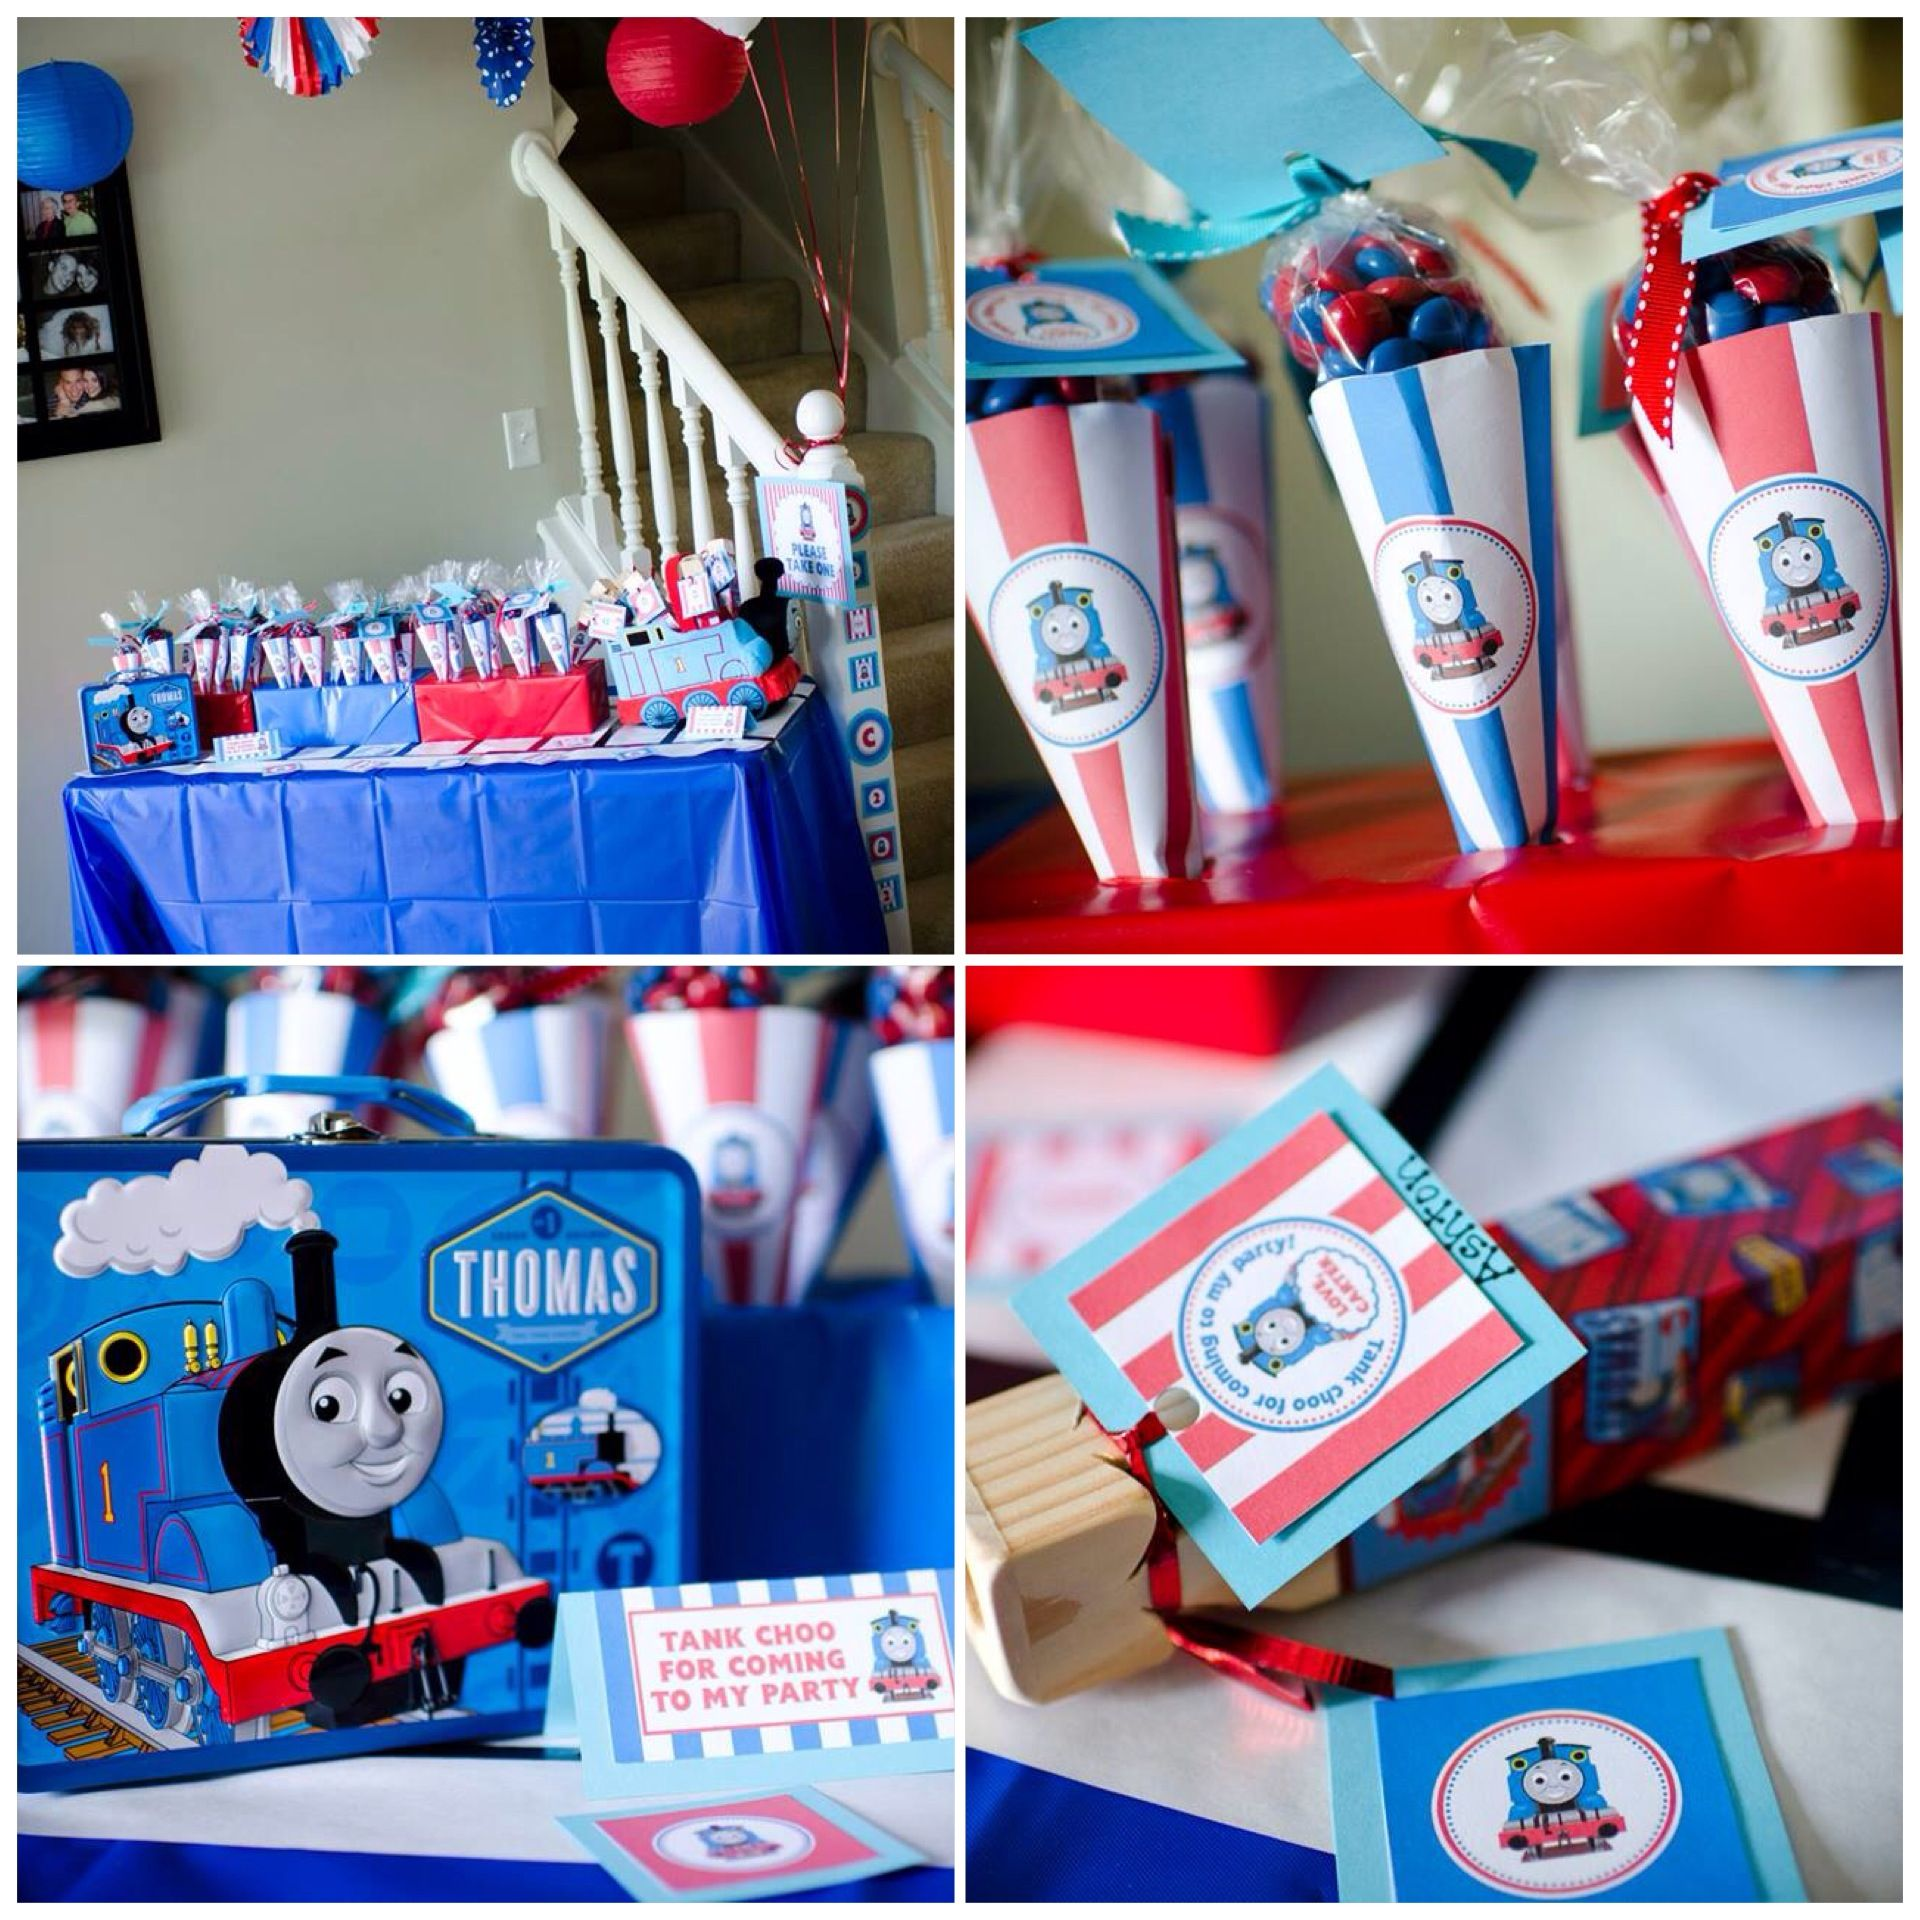 thomas the train birthday party favor cones filled with m m 39 s train whistles for kid favors. Black Bedroom Furniture Sets. Home Design Ideas